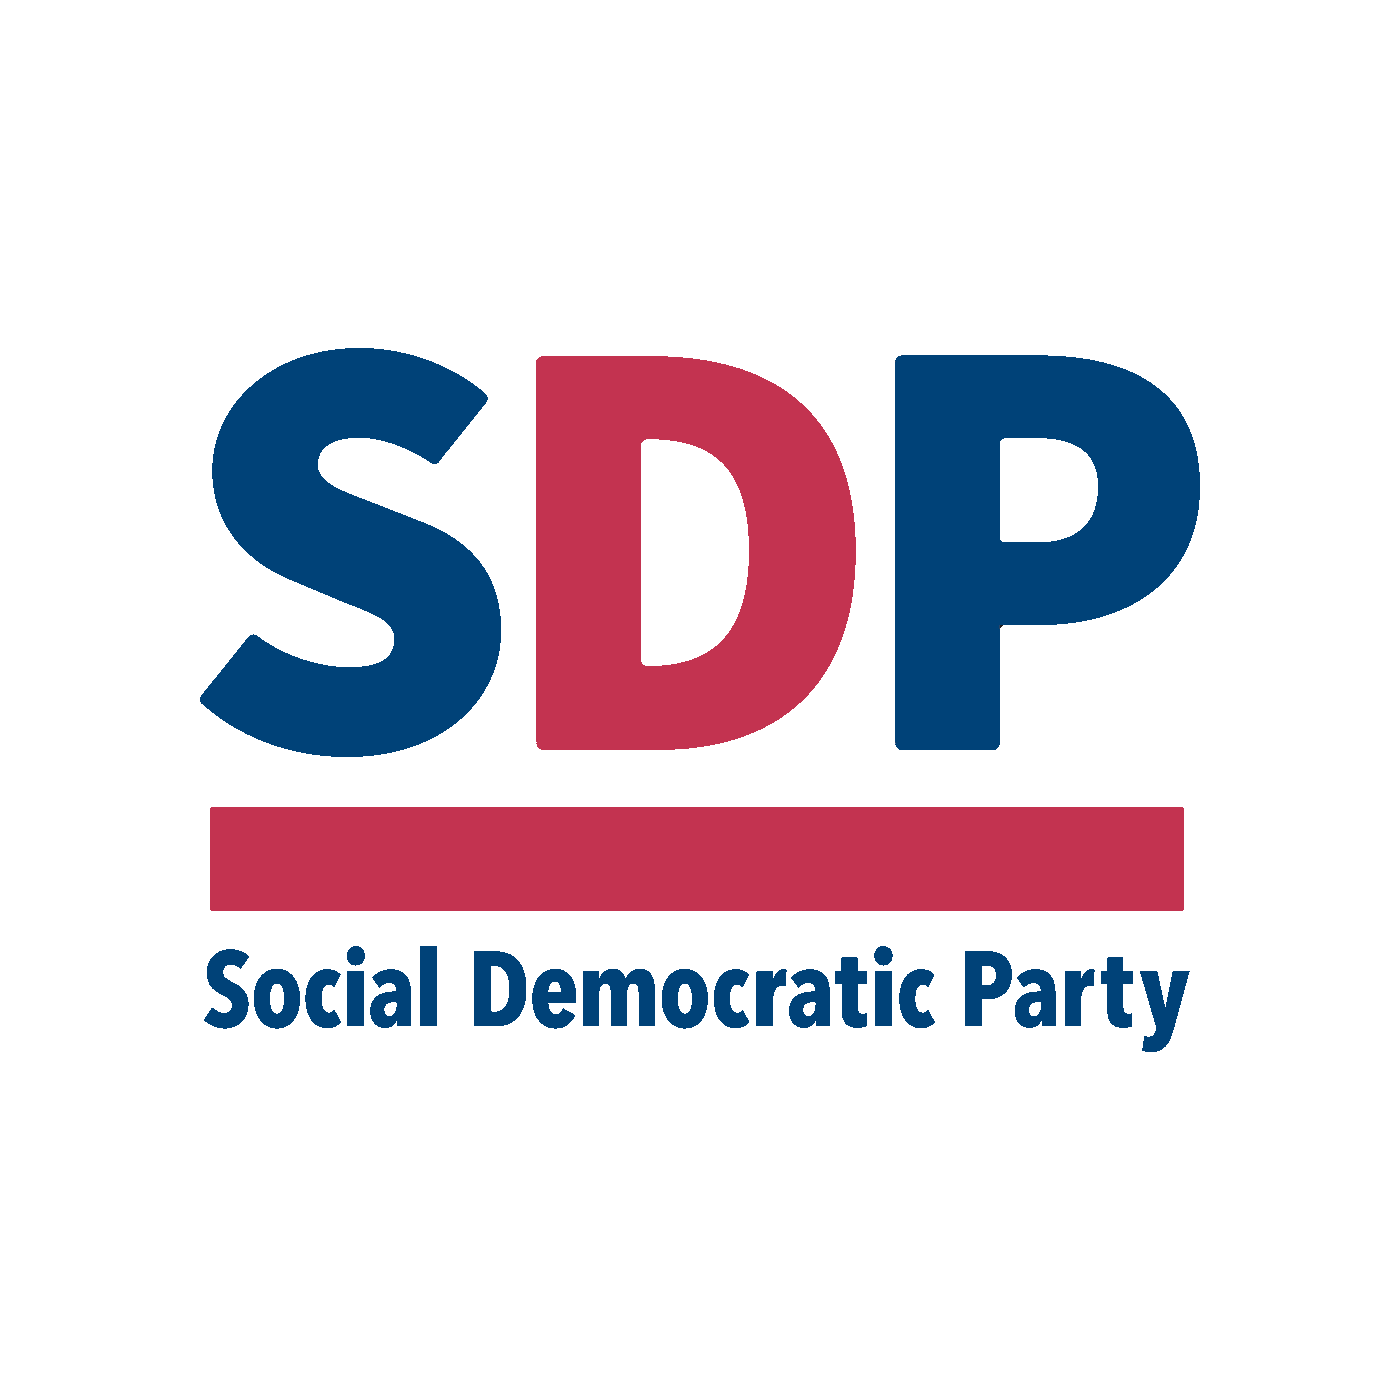 SDP - The Social Democratic Party